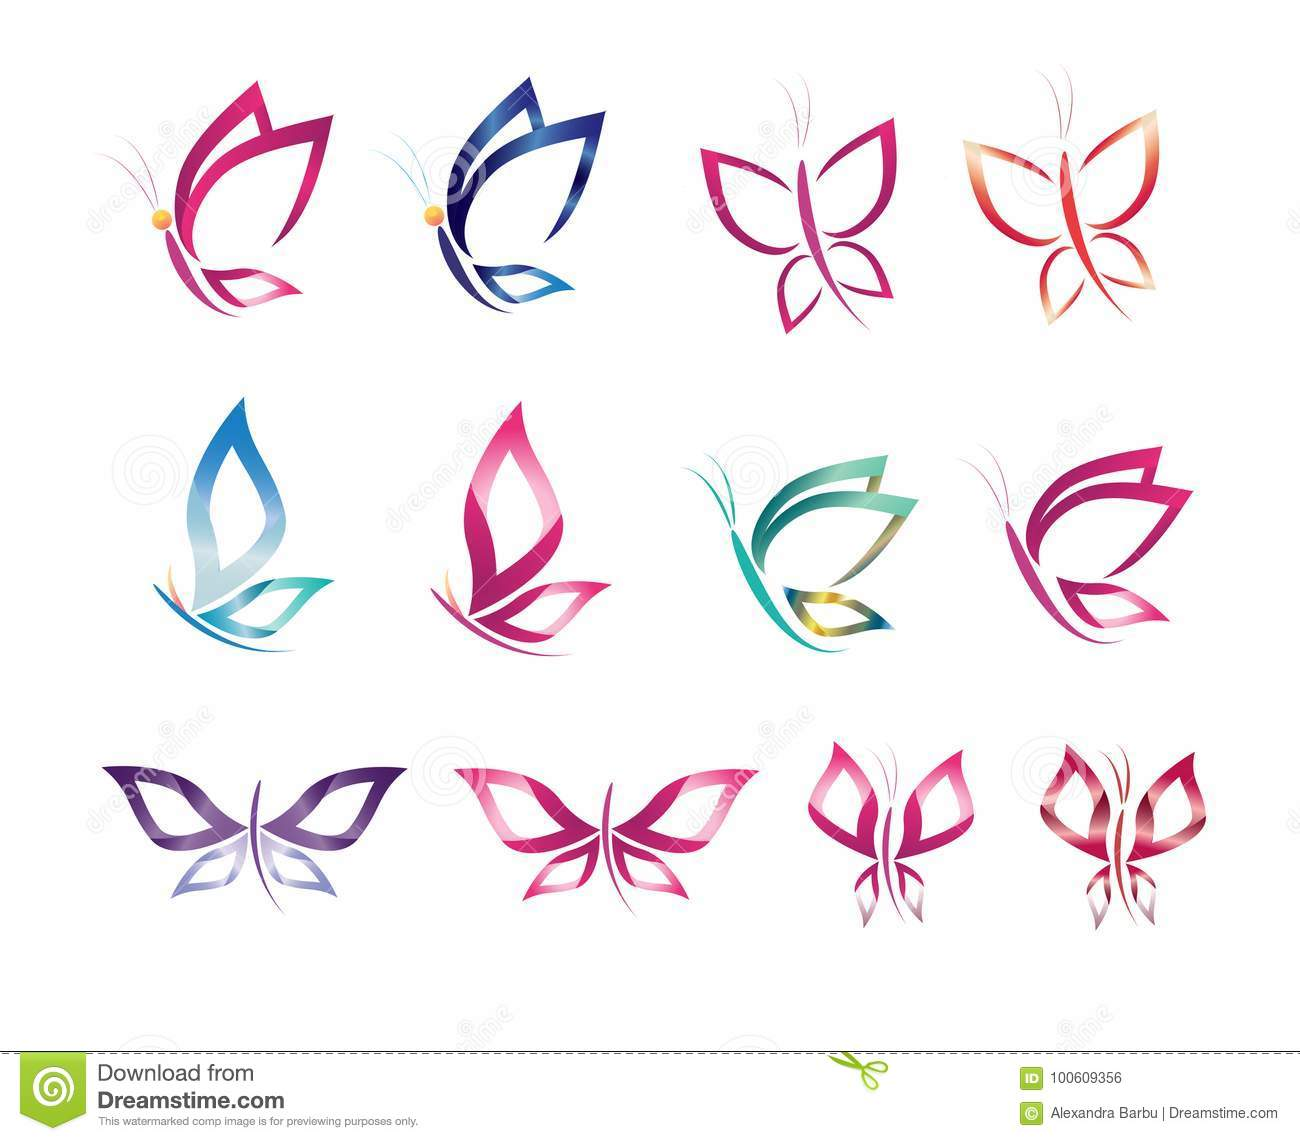 Set symbol icon design vector butterfly, logo, beauty, spa, lifestyle, care, relax, abstract, wings